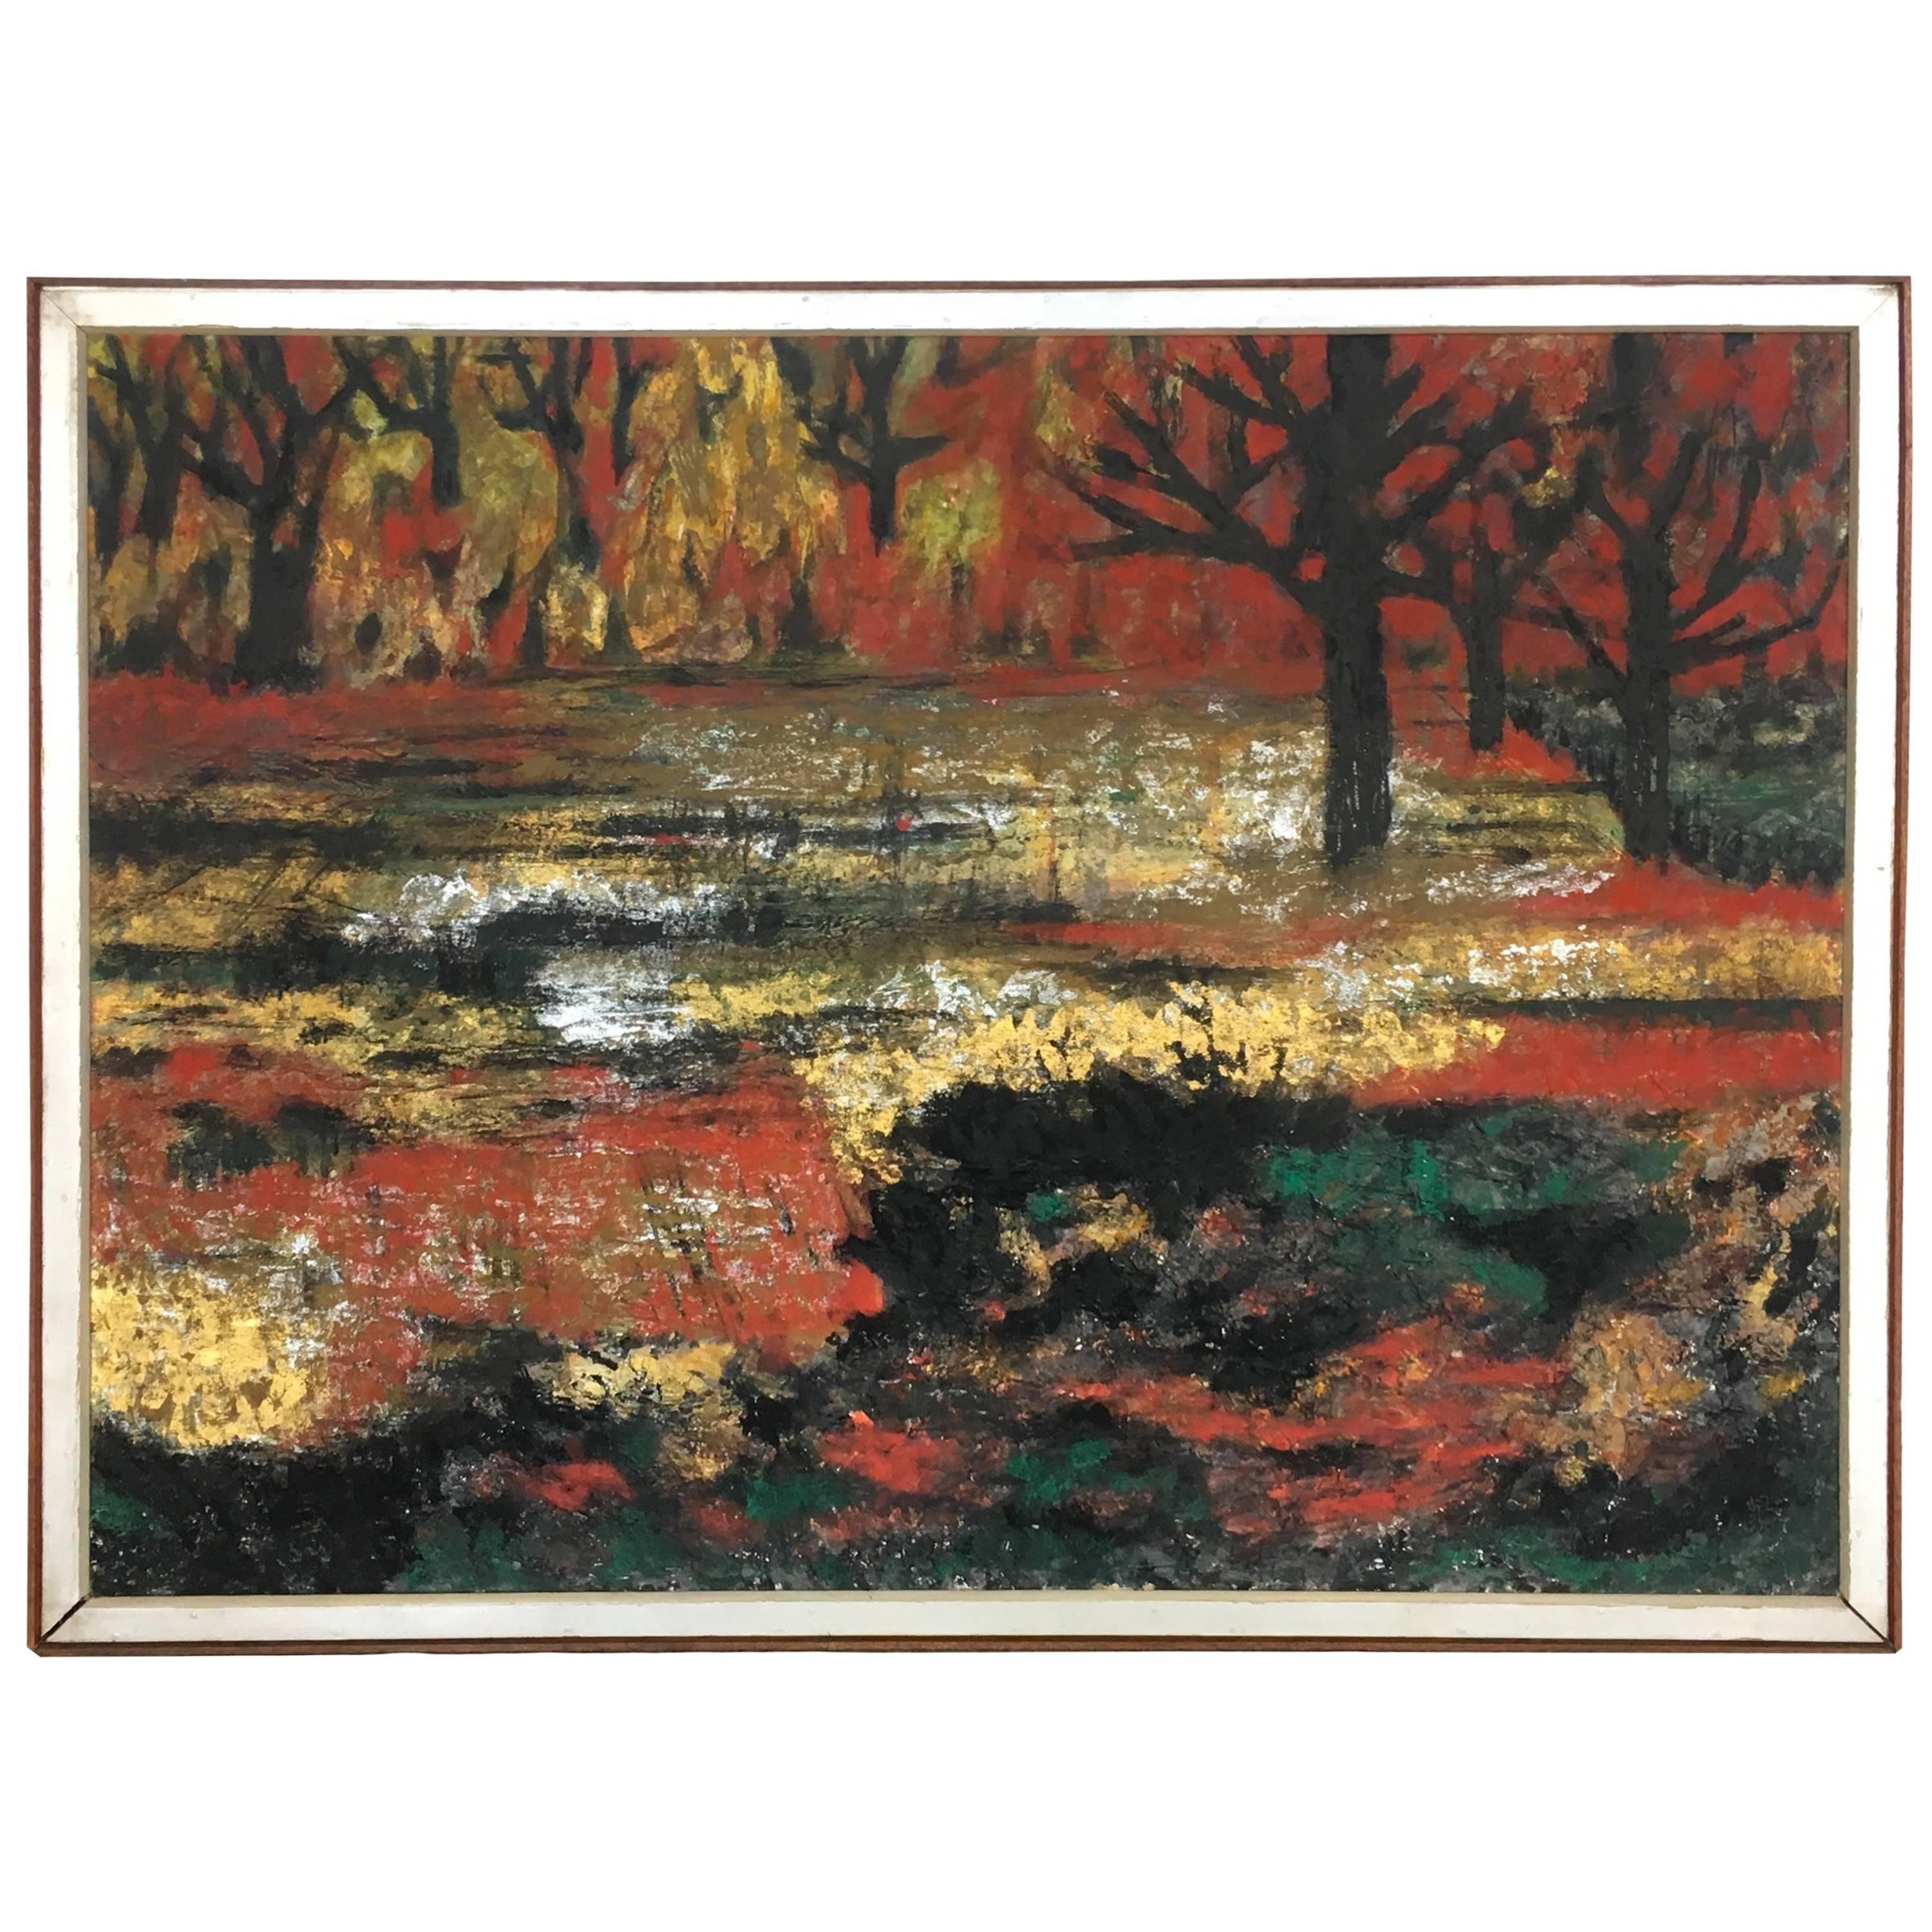 1961 Hong Kong Large Abstract Landscape Oil on Canvas